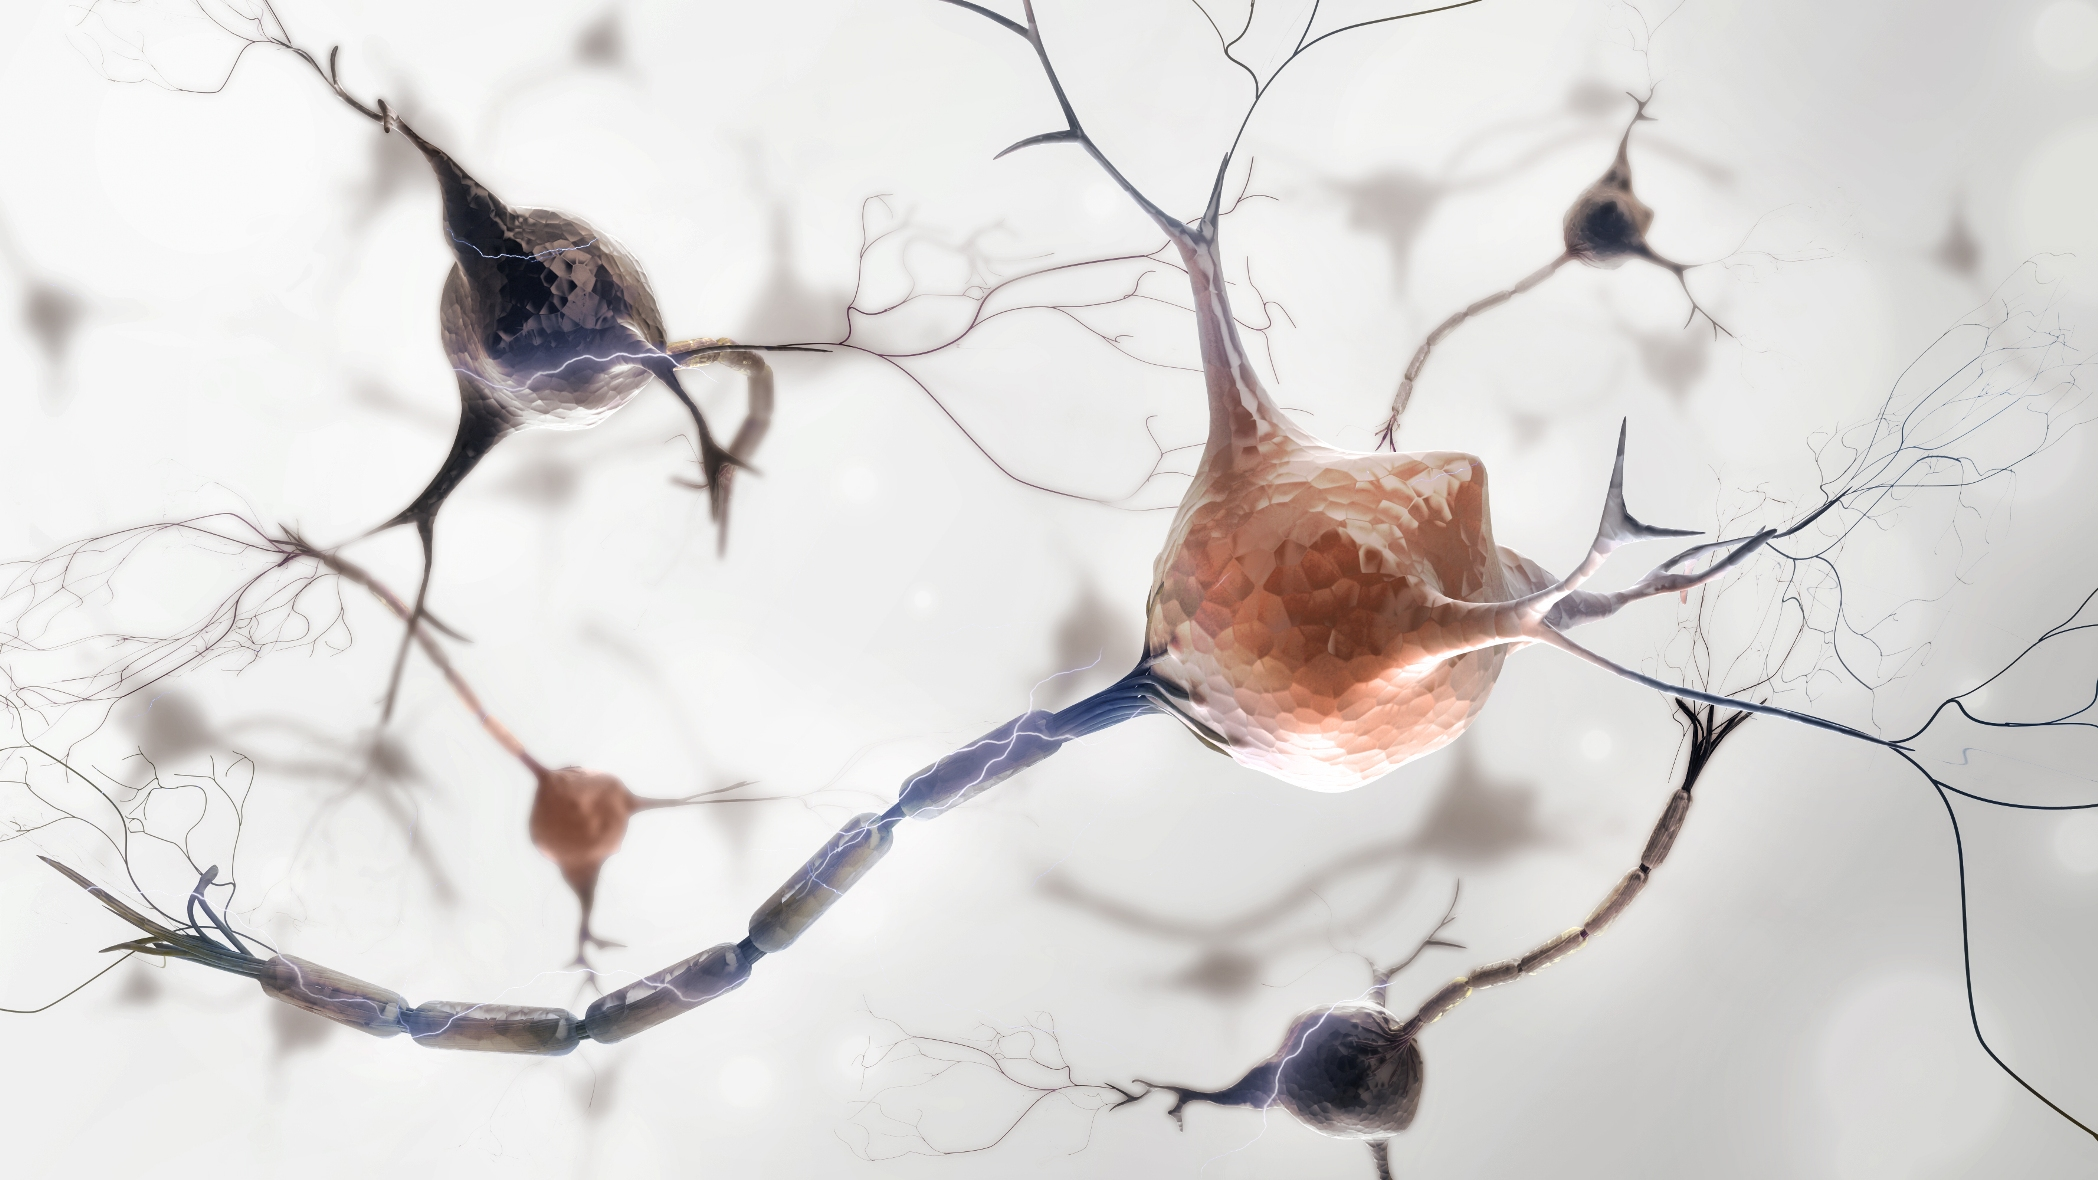 Diagnostics and therapies for neurodegenerative diseases